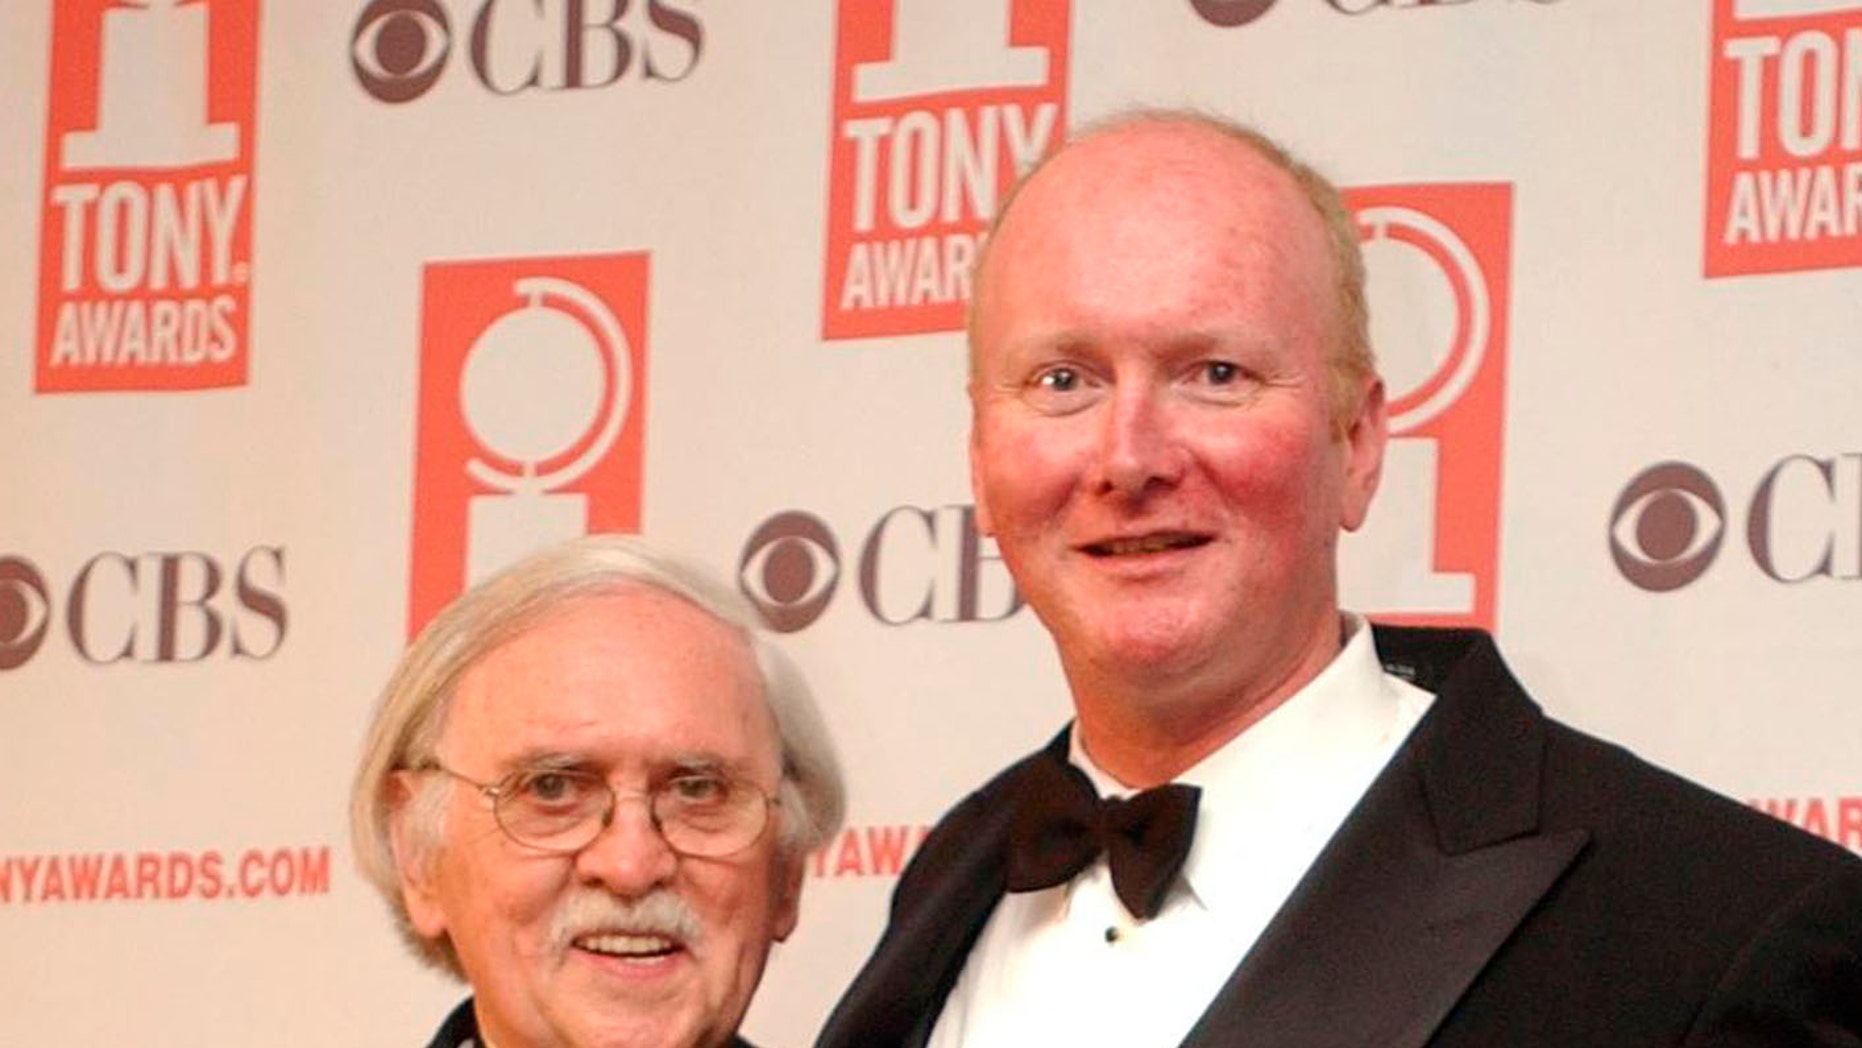 """FILE - In this June 8, 2003 file photo, Thomas Meehan, left, and Mark O'Donnell pose with their Tony awards for best book of a Musical for """"Hairspray"""" during the 57th Annual Tony Awards at New York's Radio City Music Hall. On Tuesday, Aug. 22, 2017, Martin Charnin said that Meehan, the three-time Tony Award-winning book writer, has died. Meehan was 88. (AP Photo/Mary Altaffer, File)"""